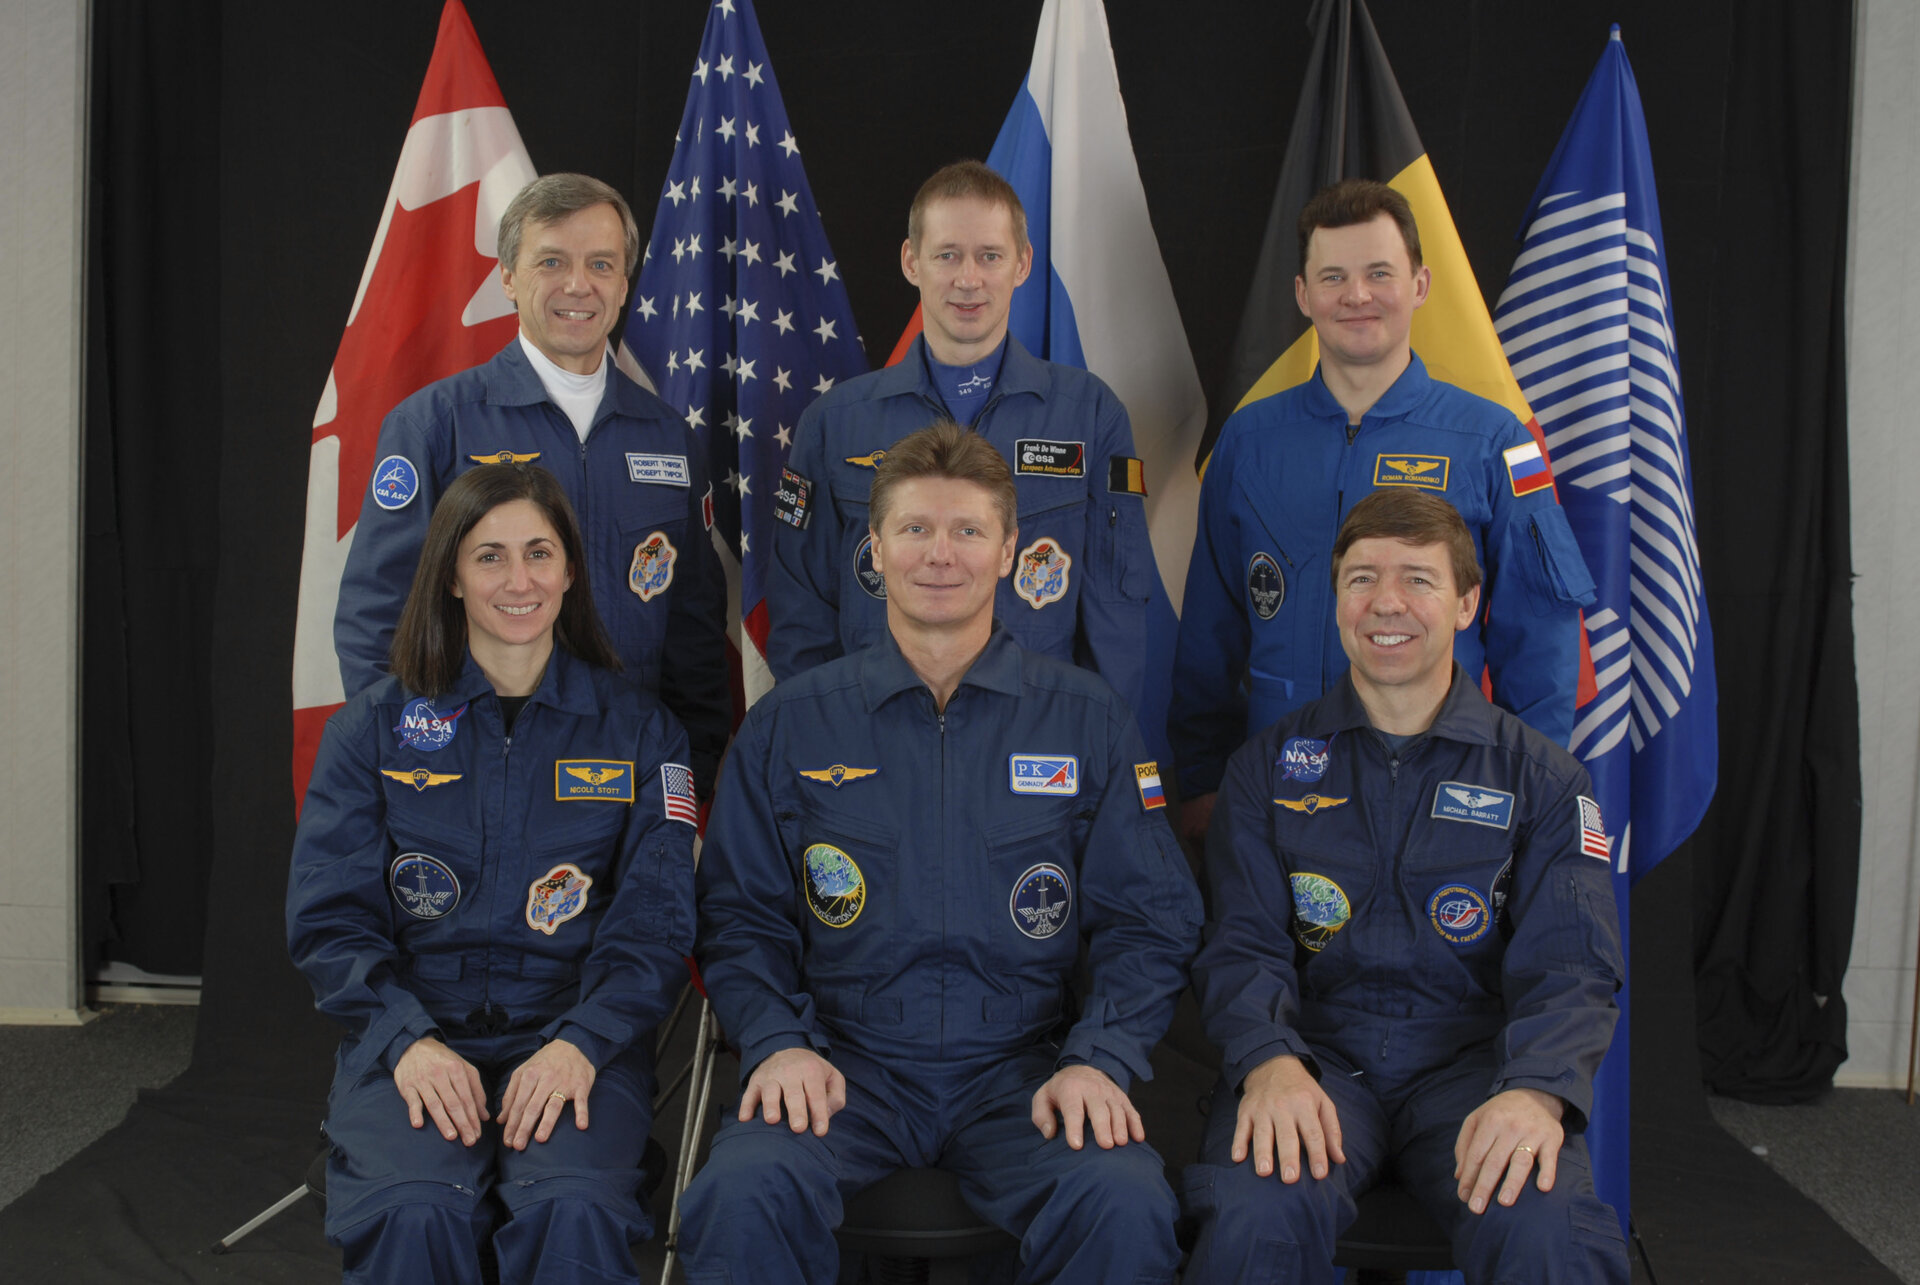 ISS Expedition 20 crew portrait